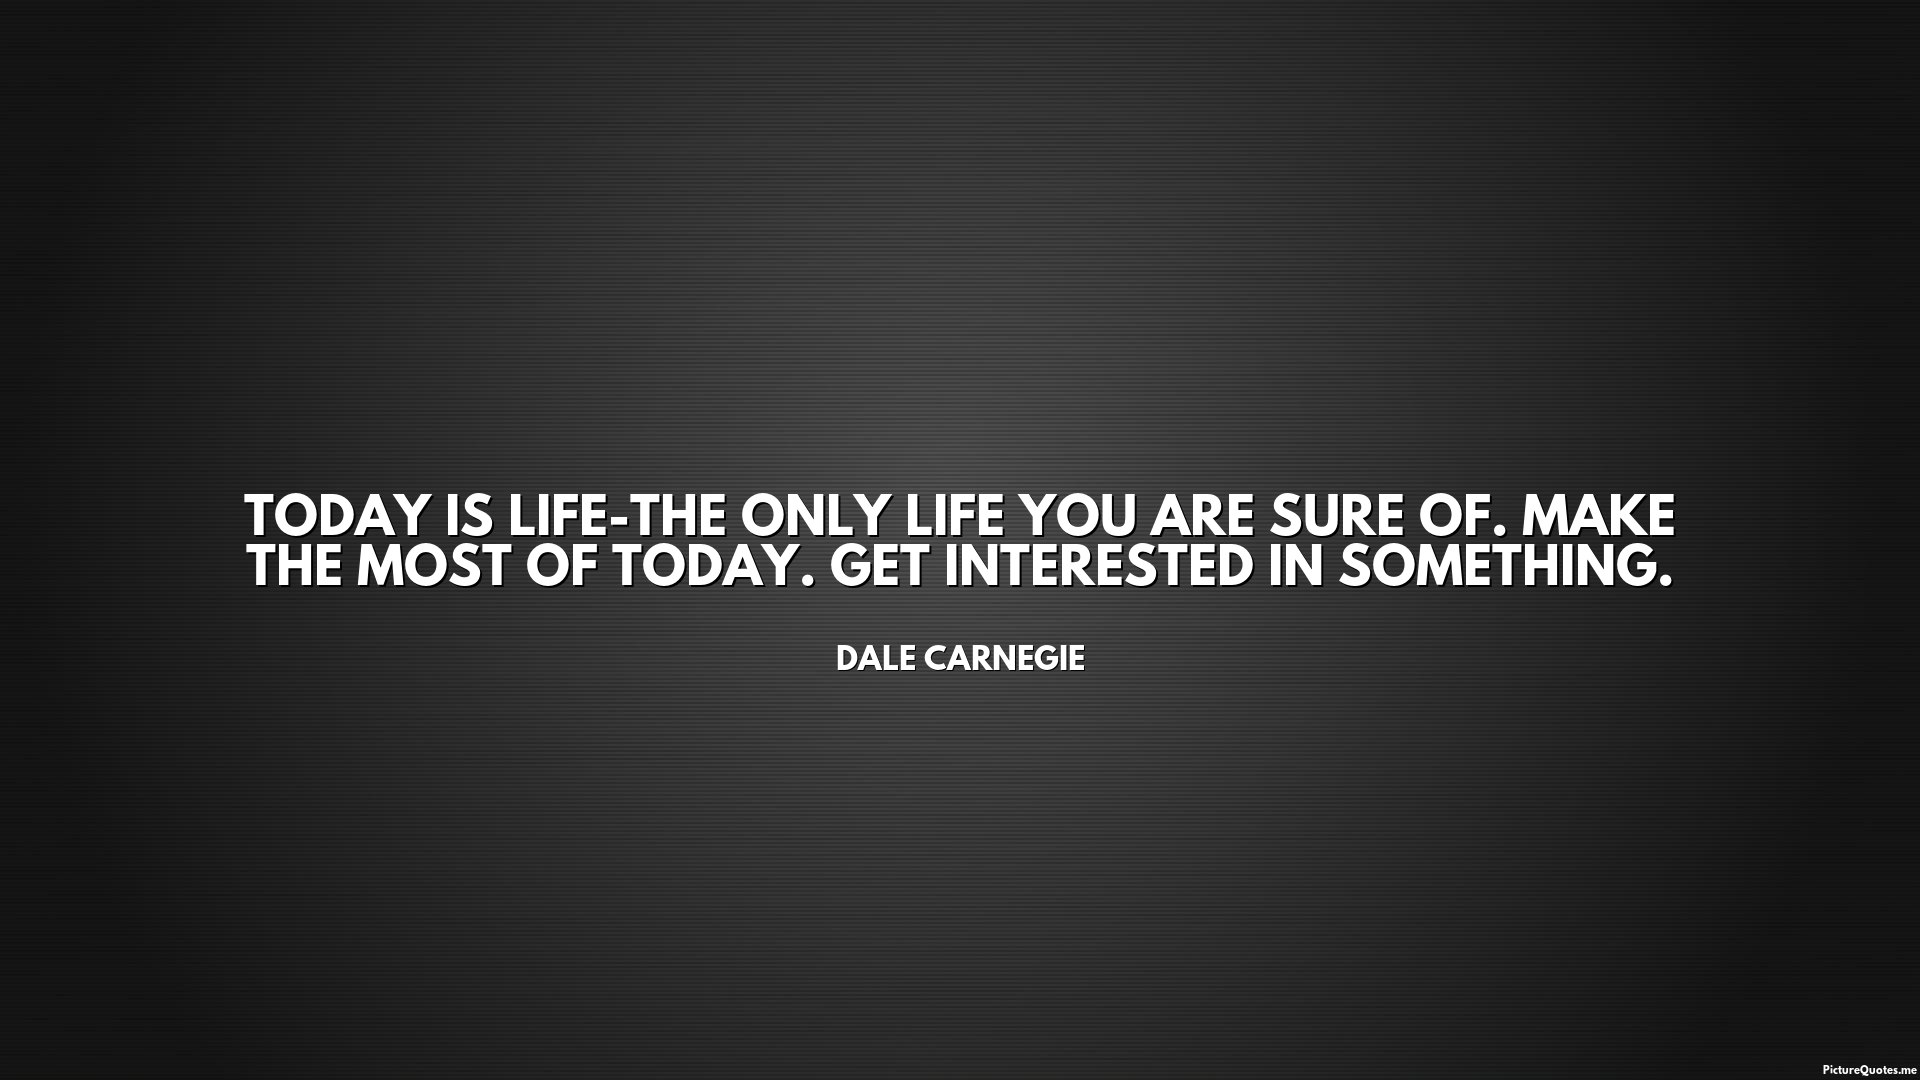 Quote For Today About Life Today Is Lifethe Only Life You Are Sure Ofmake The Most Of